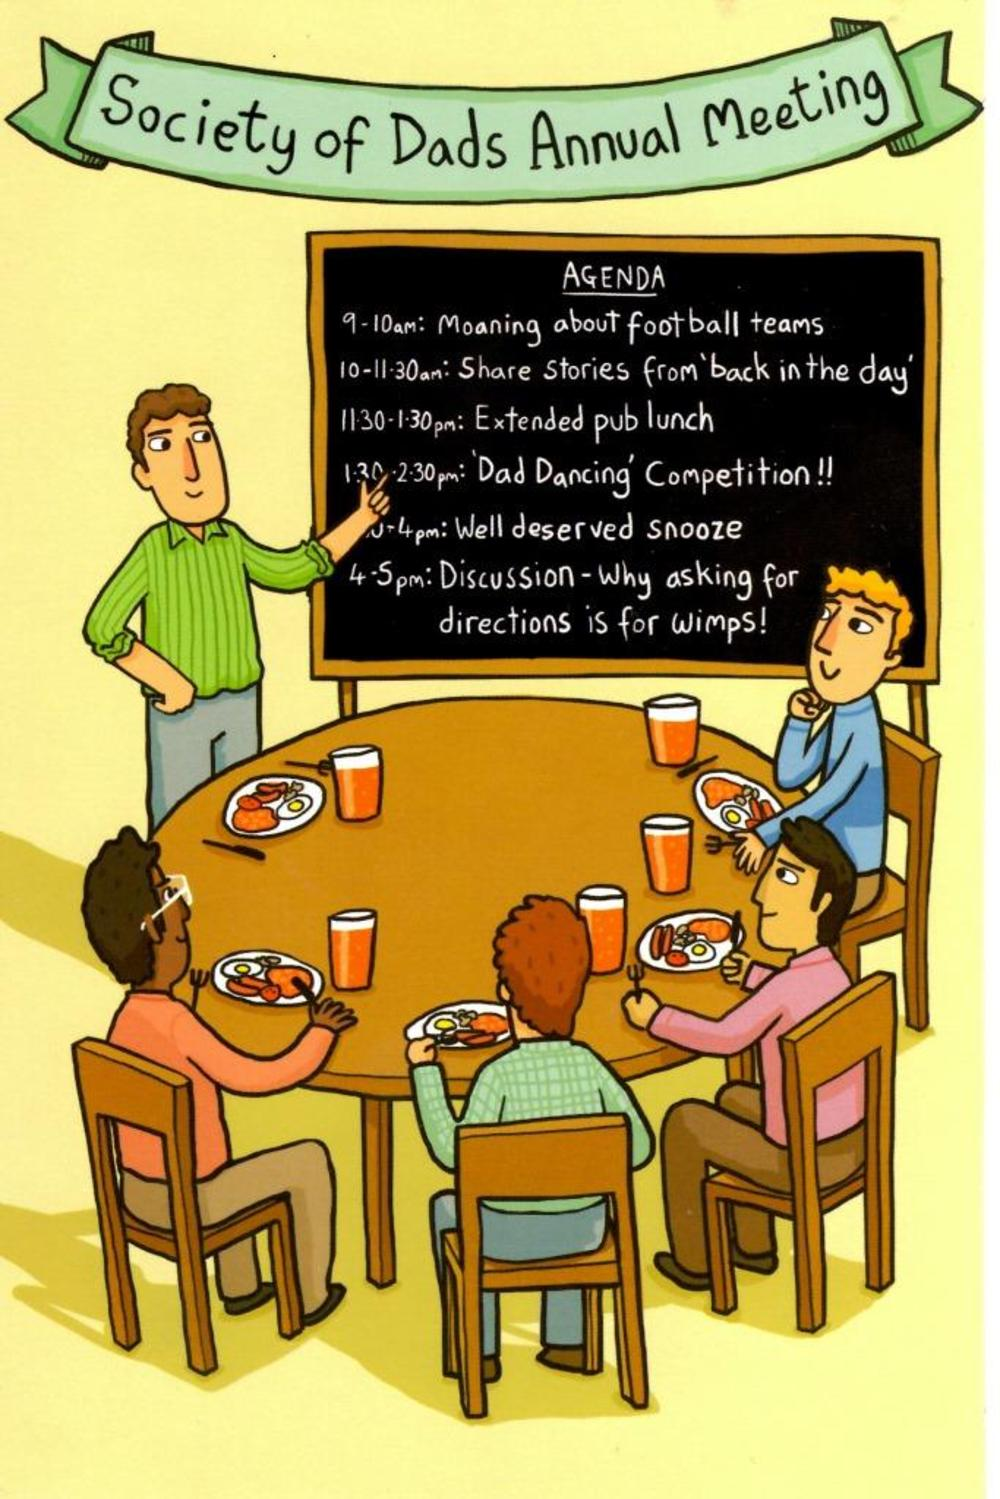 Funny Dad's Annual Meeting Father's Day Card